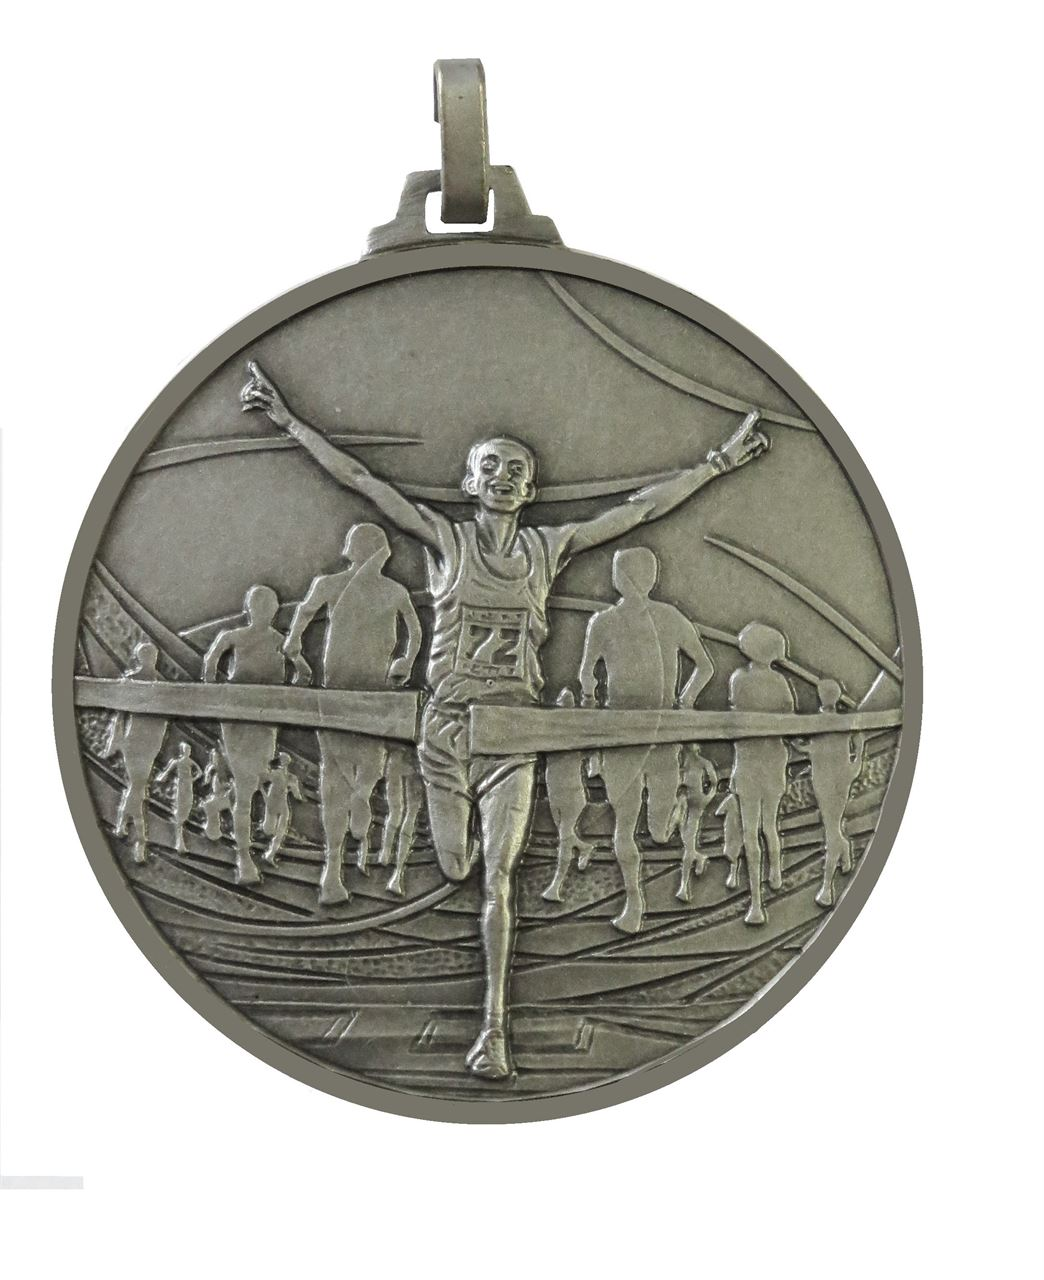 Silver Faceted Winning Runner Medal (size: 52mm) - 438/52S